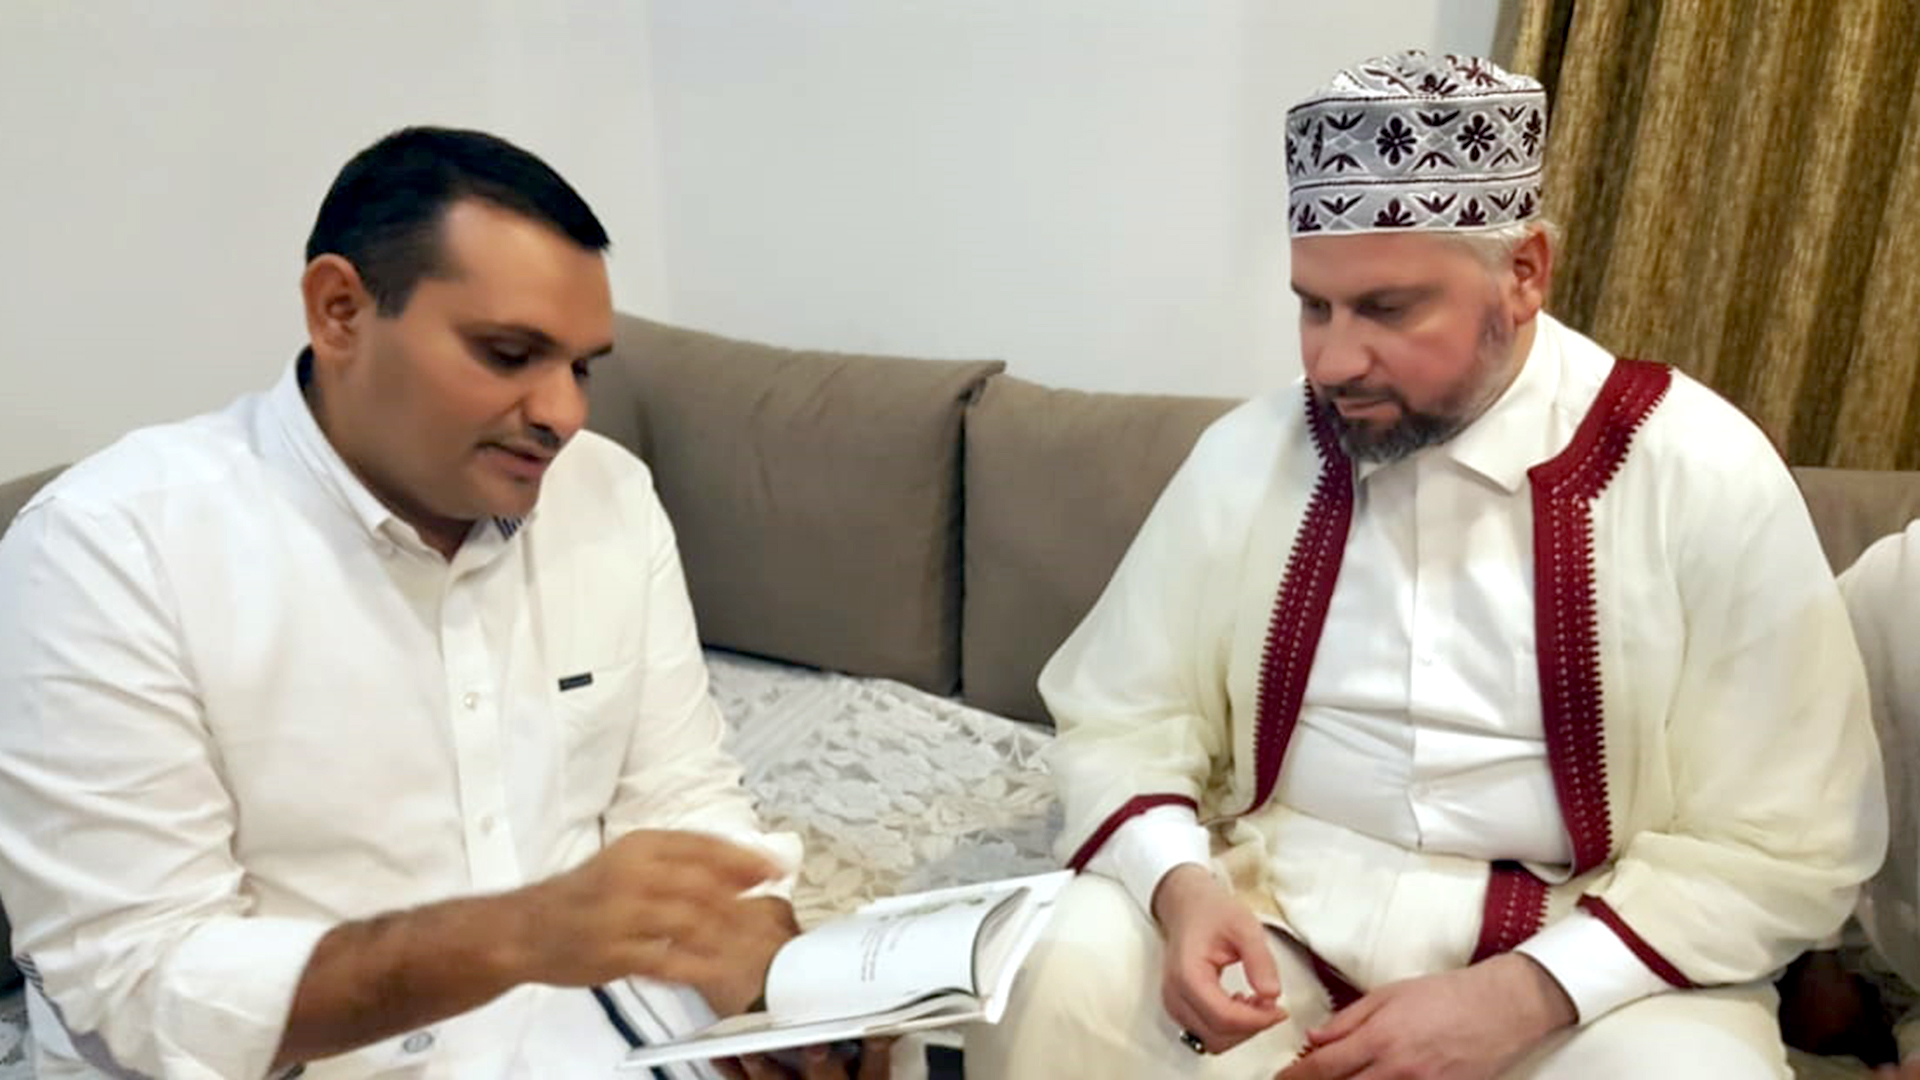 Sayyid Munavvarali Shihab Thangal briefs Mohamed Khair Al-Ghabani alhusaini about the quotations of his father, Sayyid Shihab Thangal.